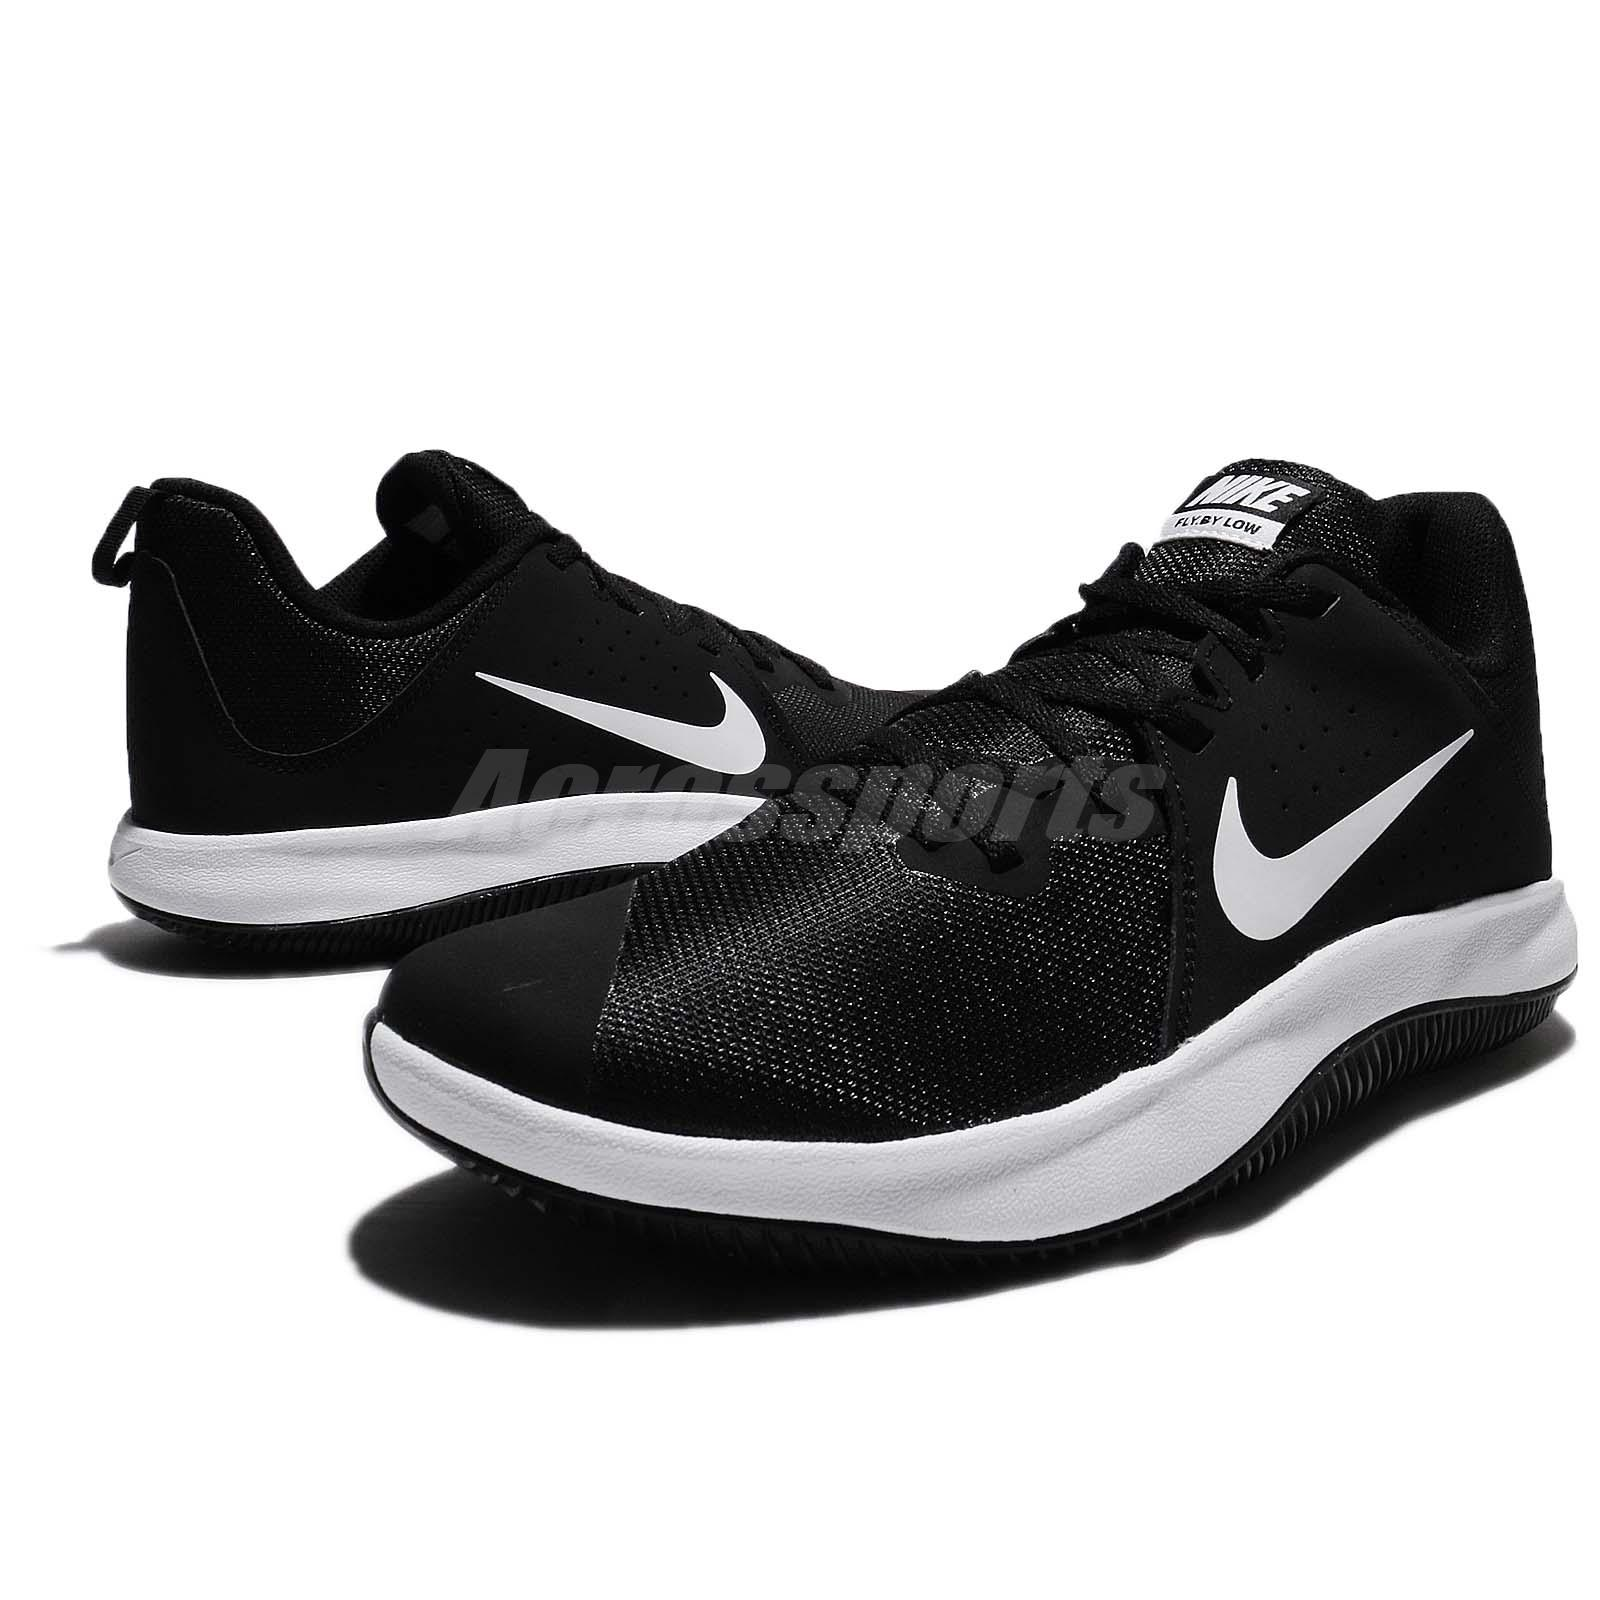 a141f3369d4f Nike Fly.By Low Black White Men Basketball Shoes Sneakers Trainers ...